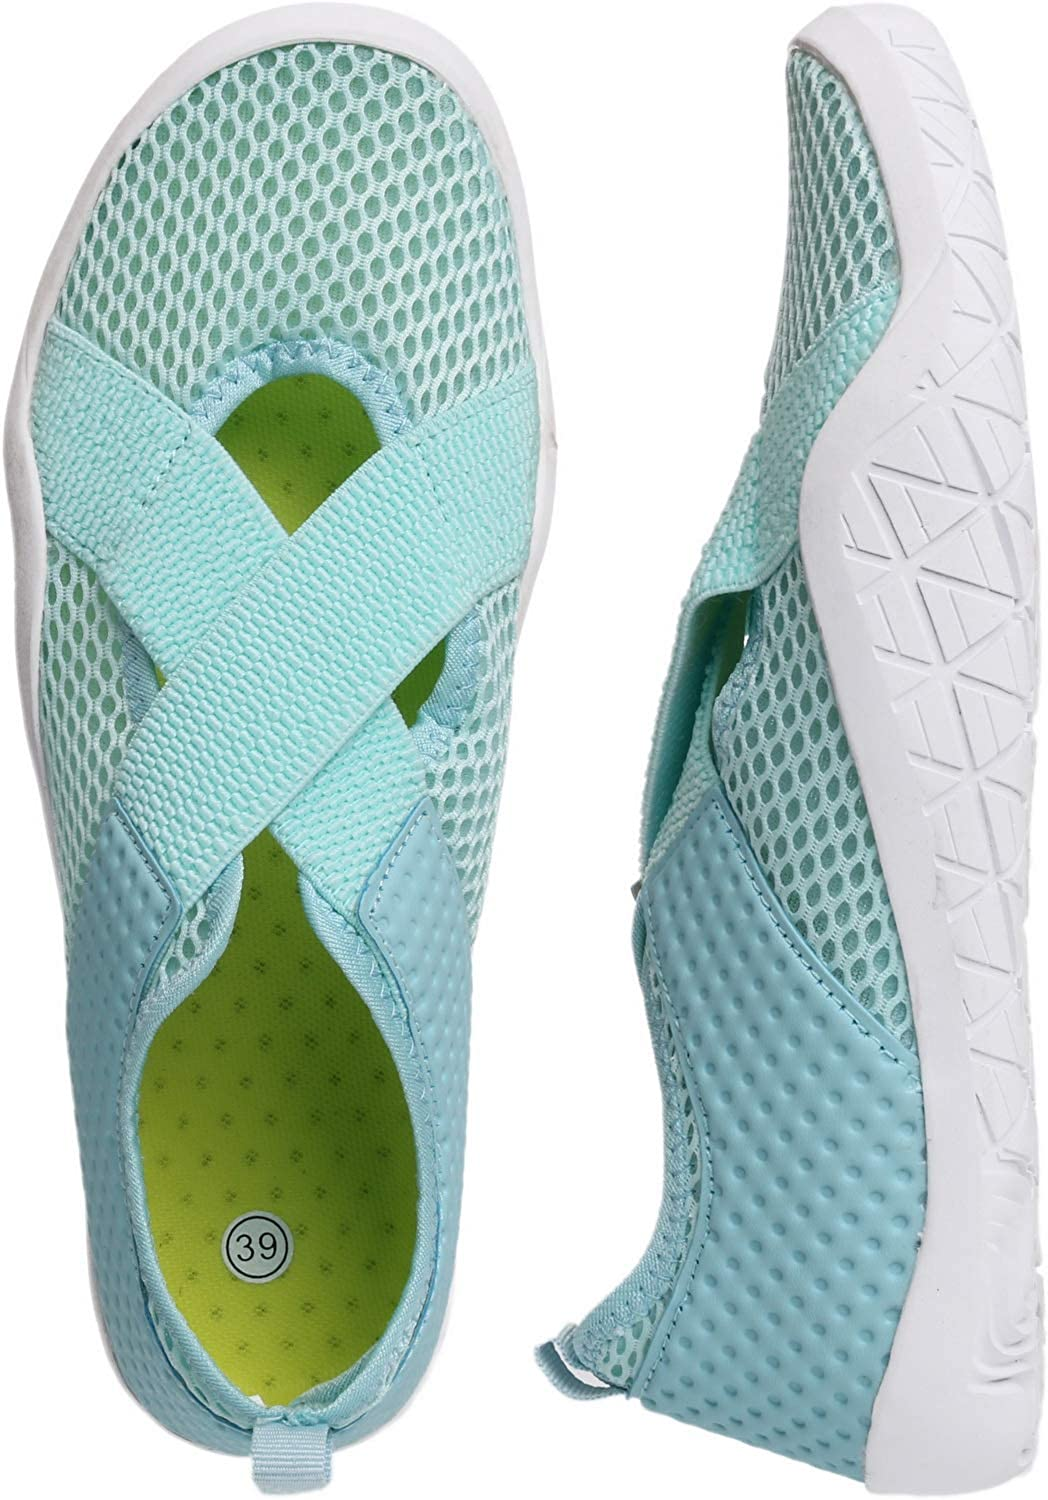 WHITIN Womens Water Shoes with Arch Support